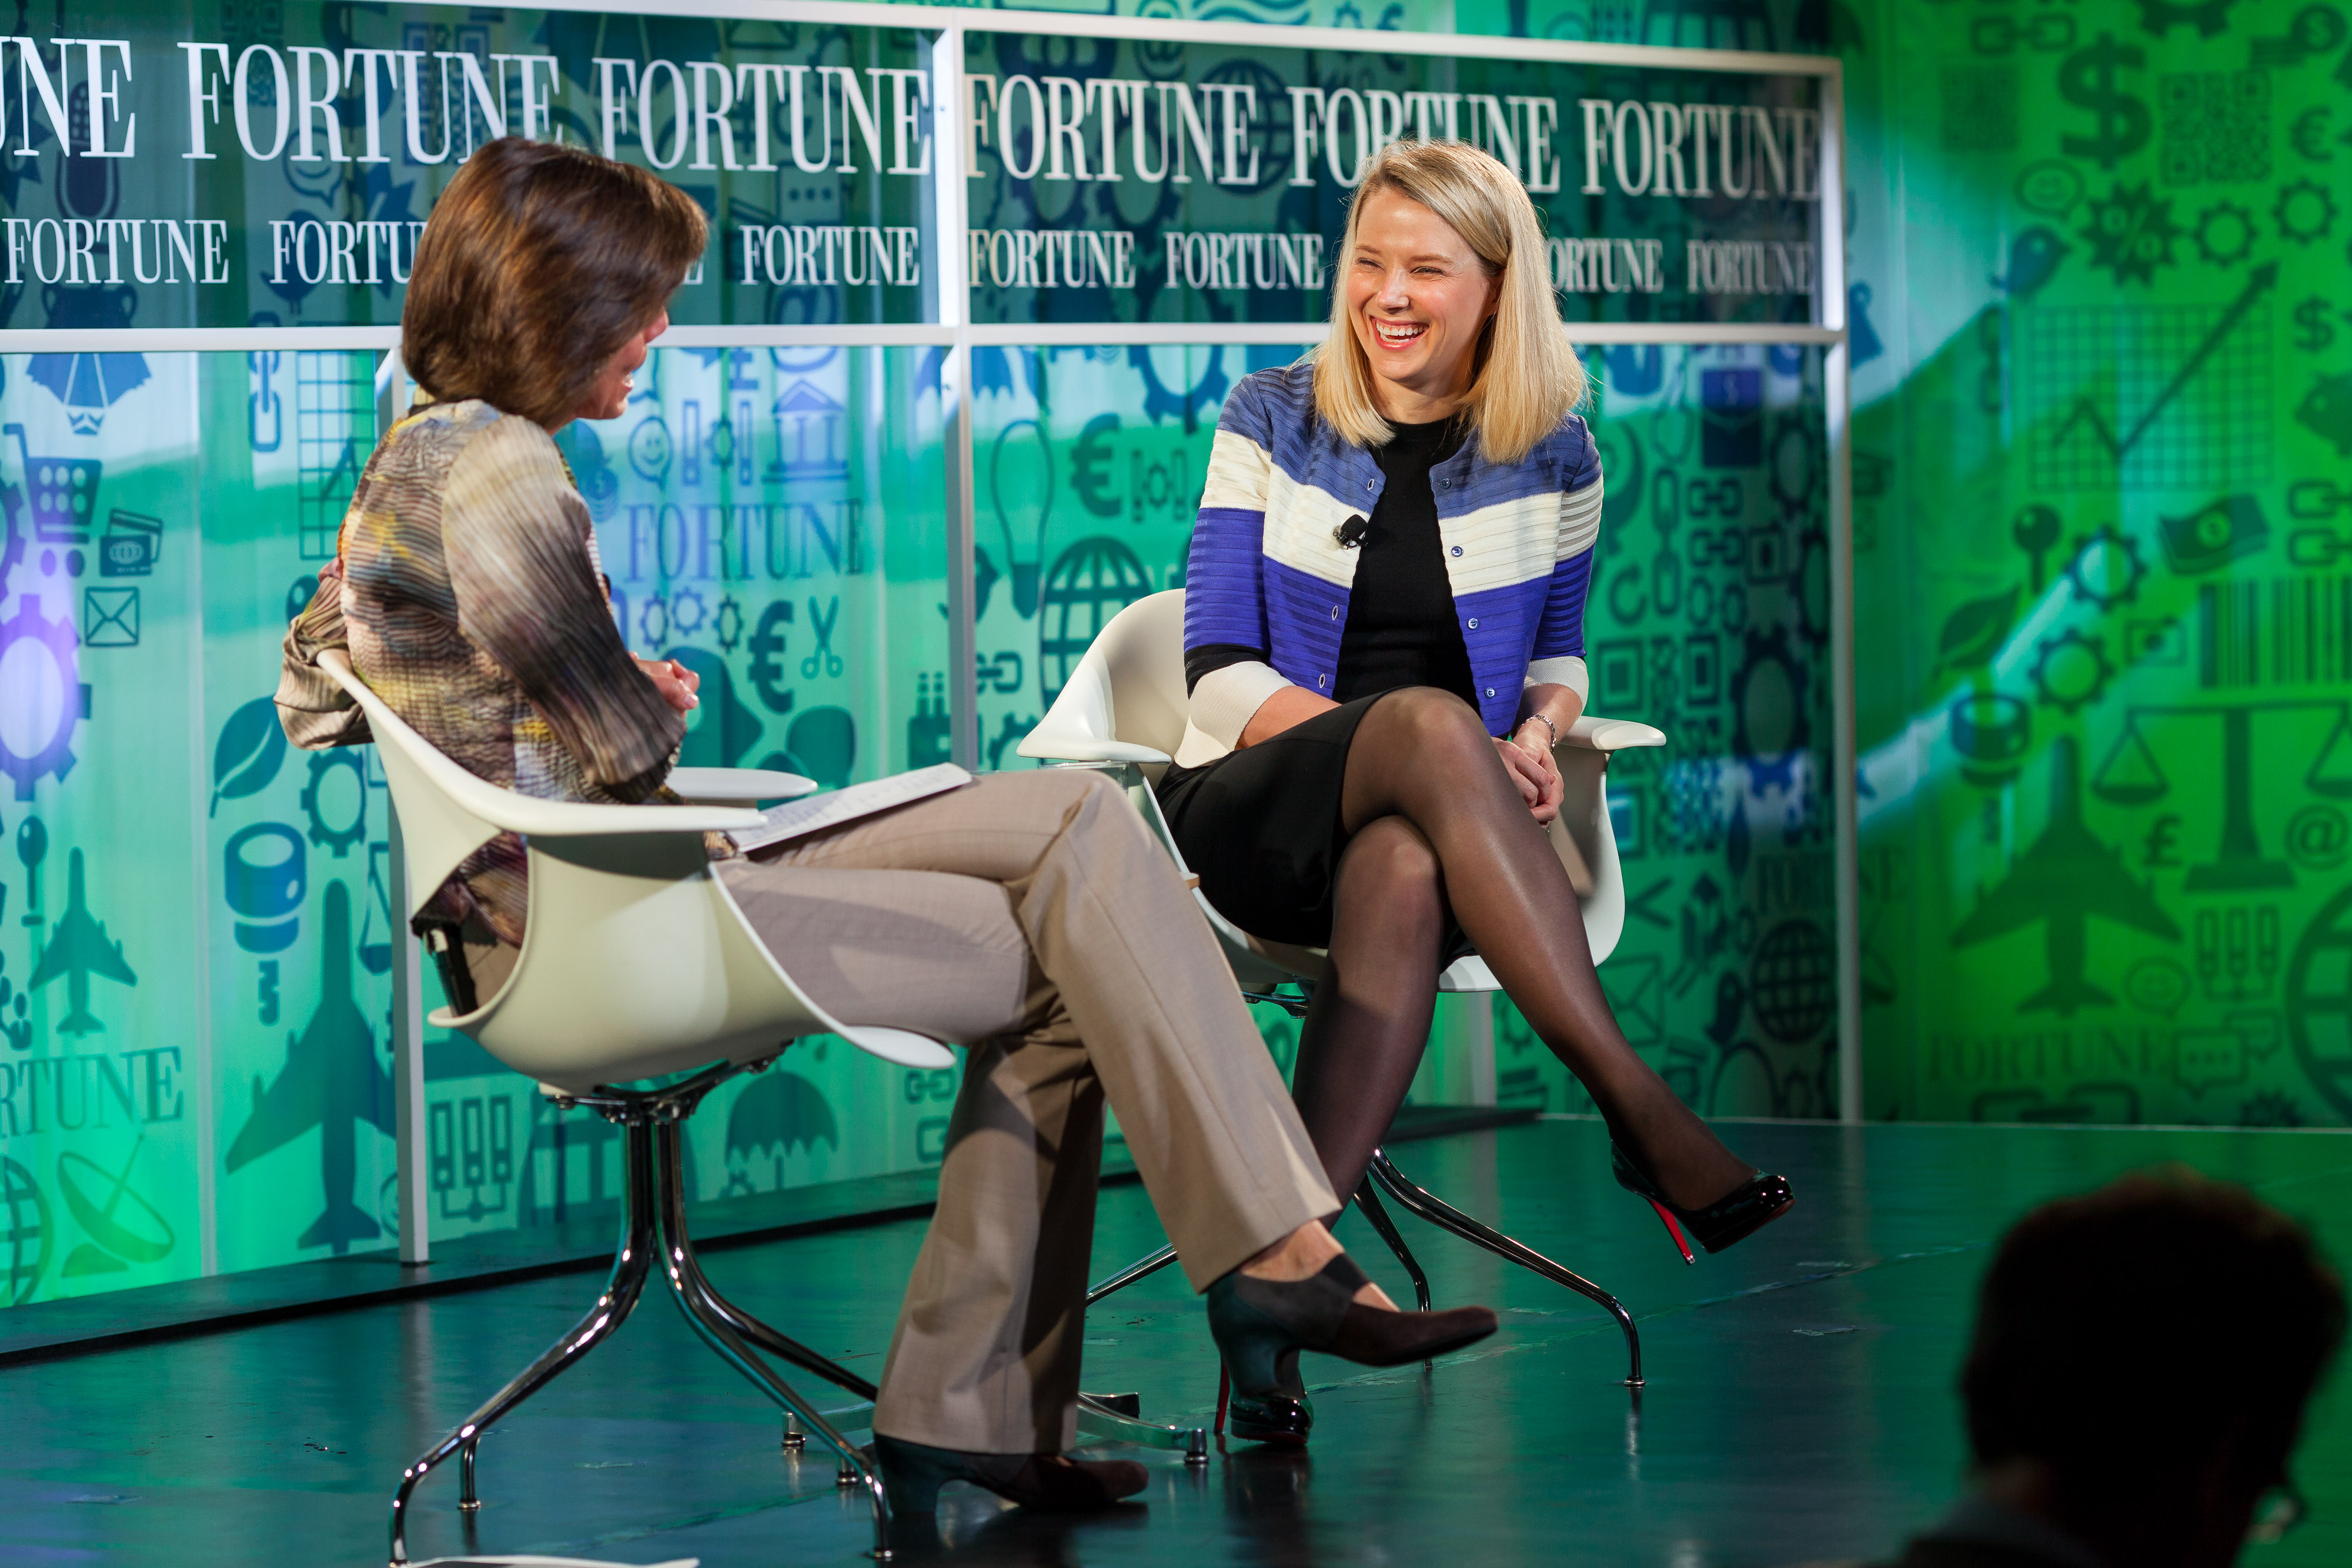 Yahoo President and CEO Marissa Mayer  gets interviewed by Fortune Editor Pattie Sellers at a Most Powerful Women event in 2013  Photograph by Danuta Otfinowski/Fortune Most Powerful Women